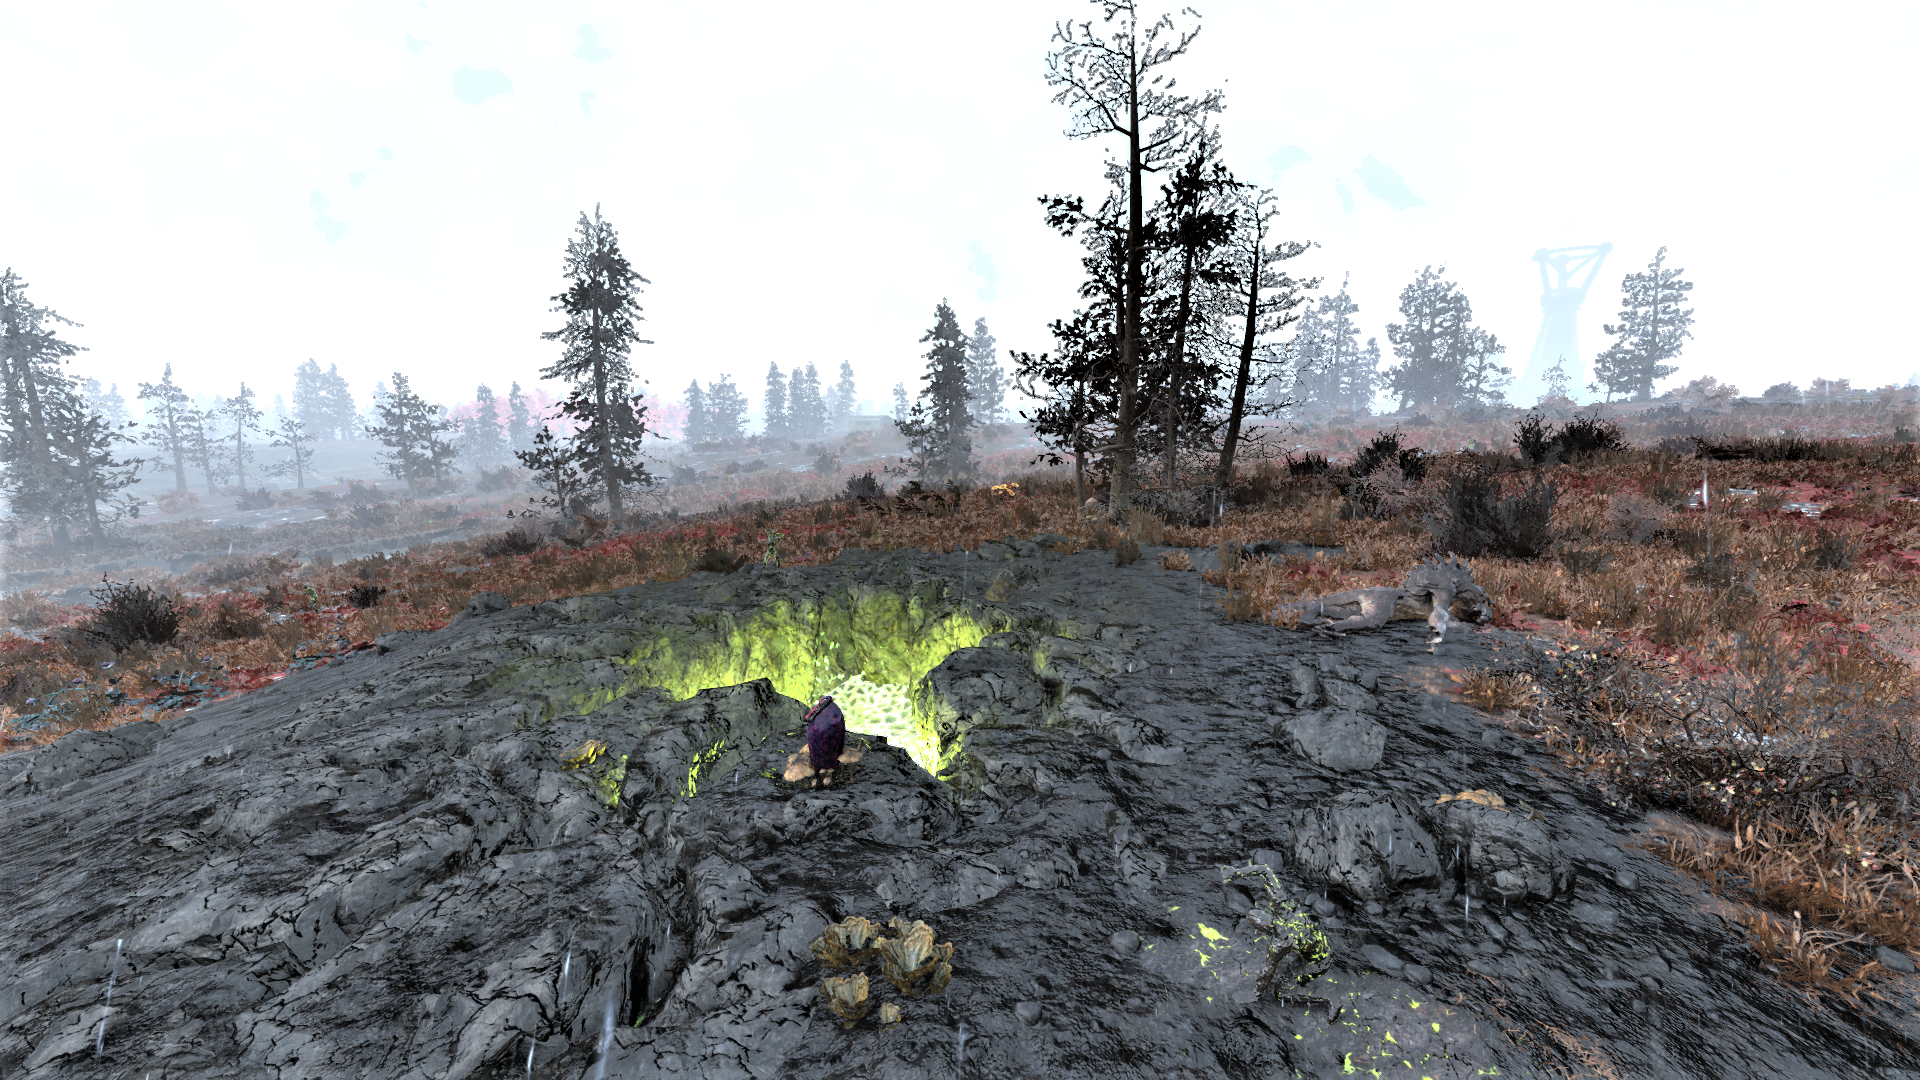 Fallout 76 Fissure Site unnamed NE of Drop Site V9 3